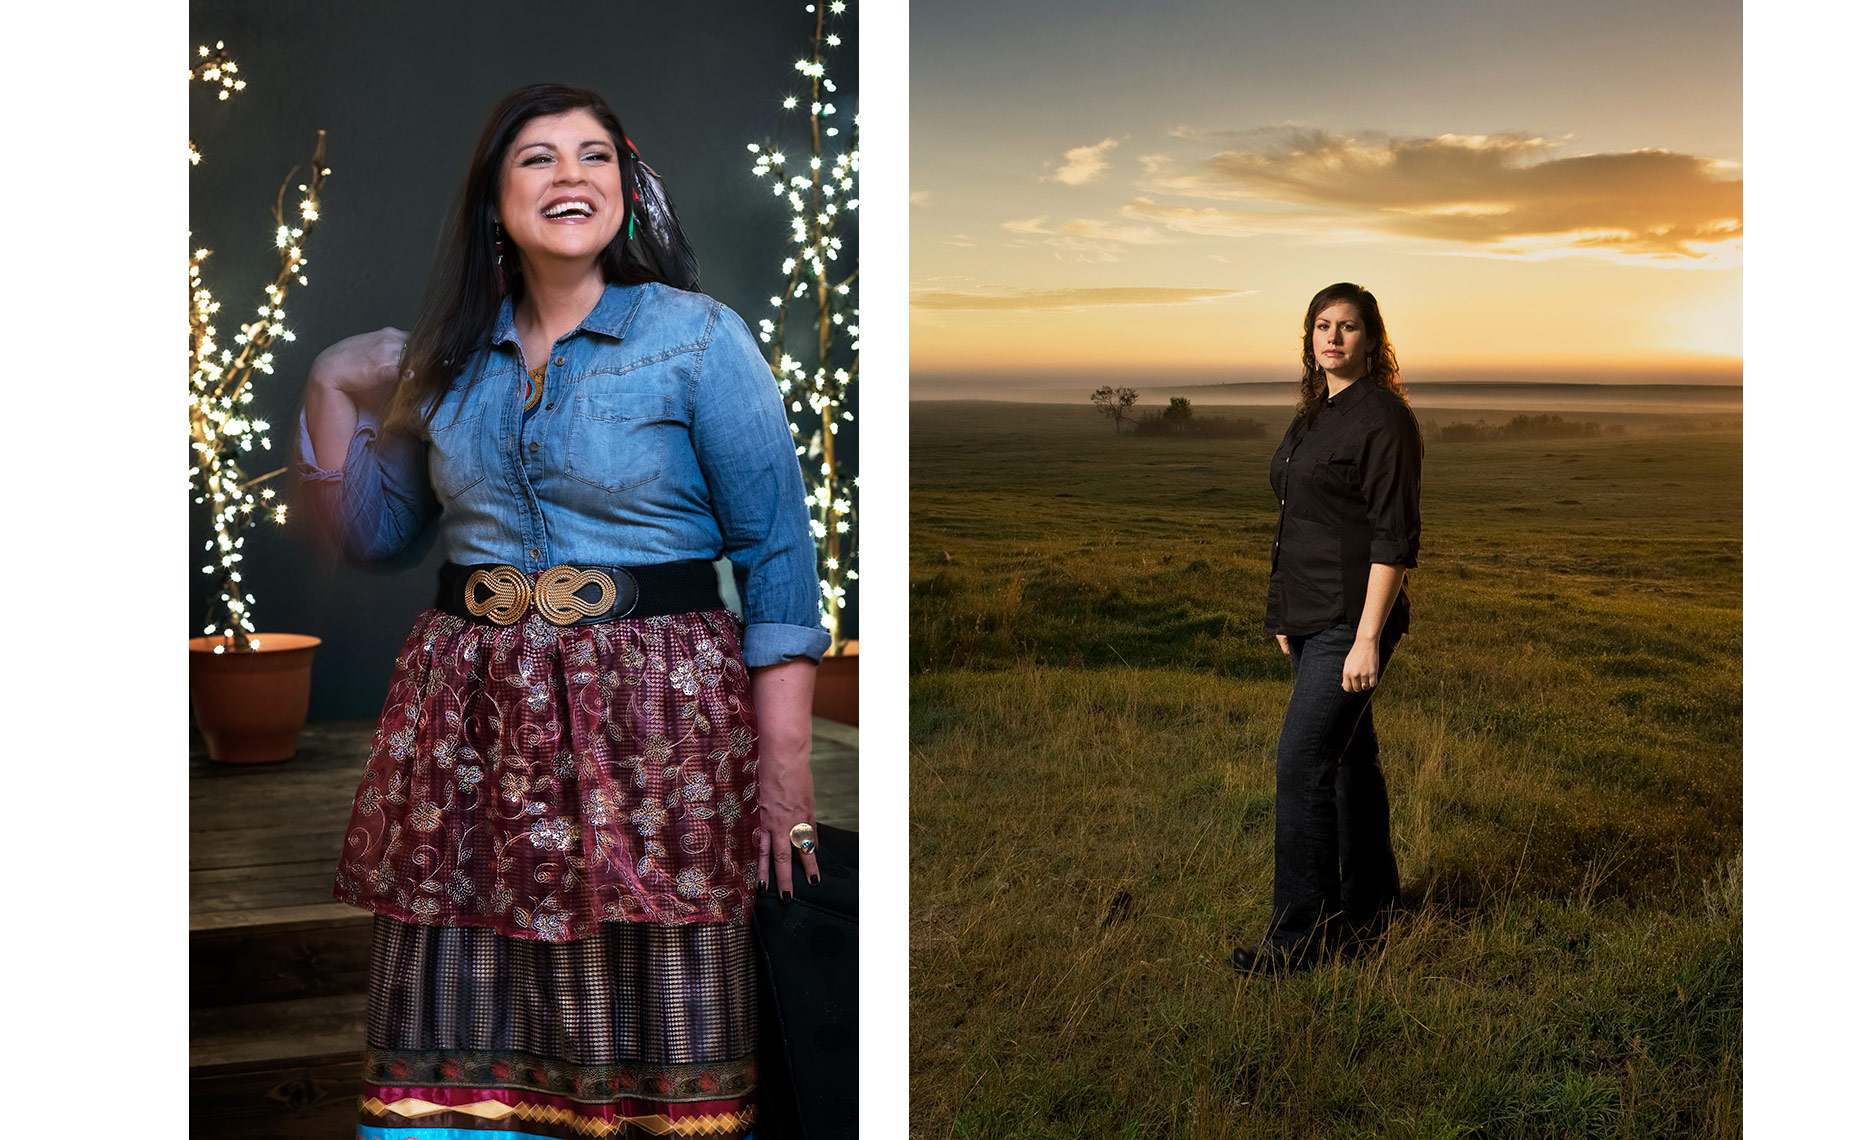 North Dakota photographer Dan Koeck | Portraits of Native American Women